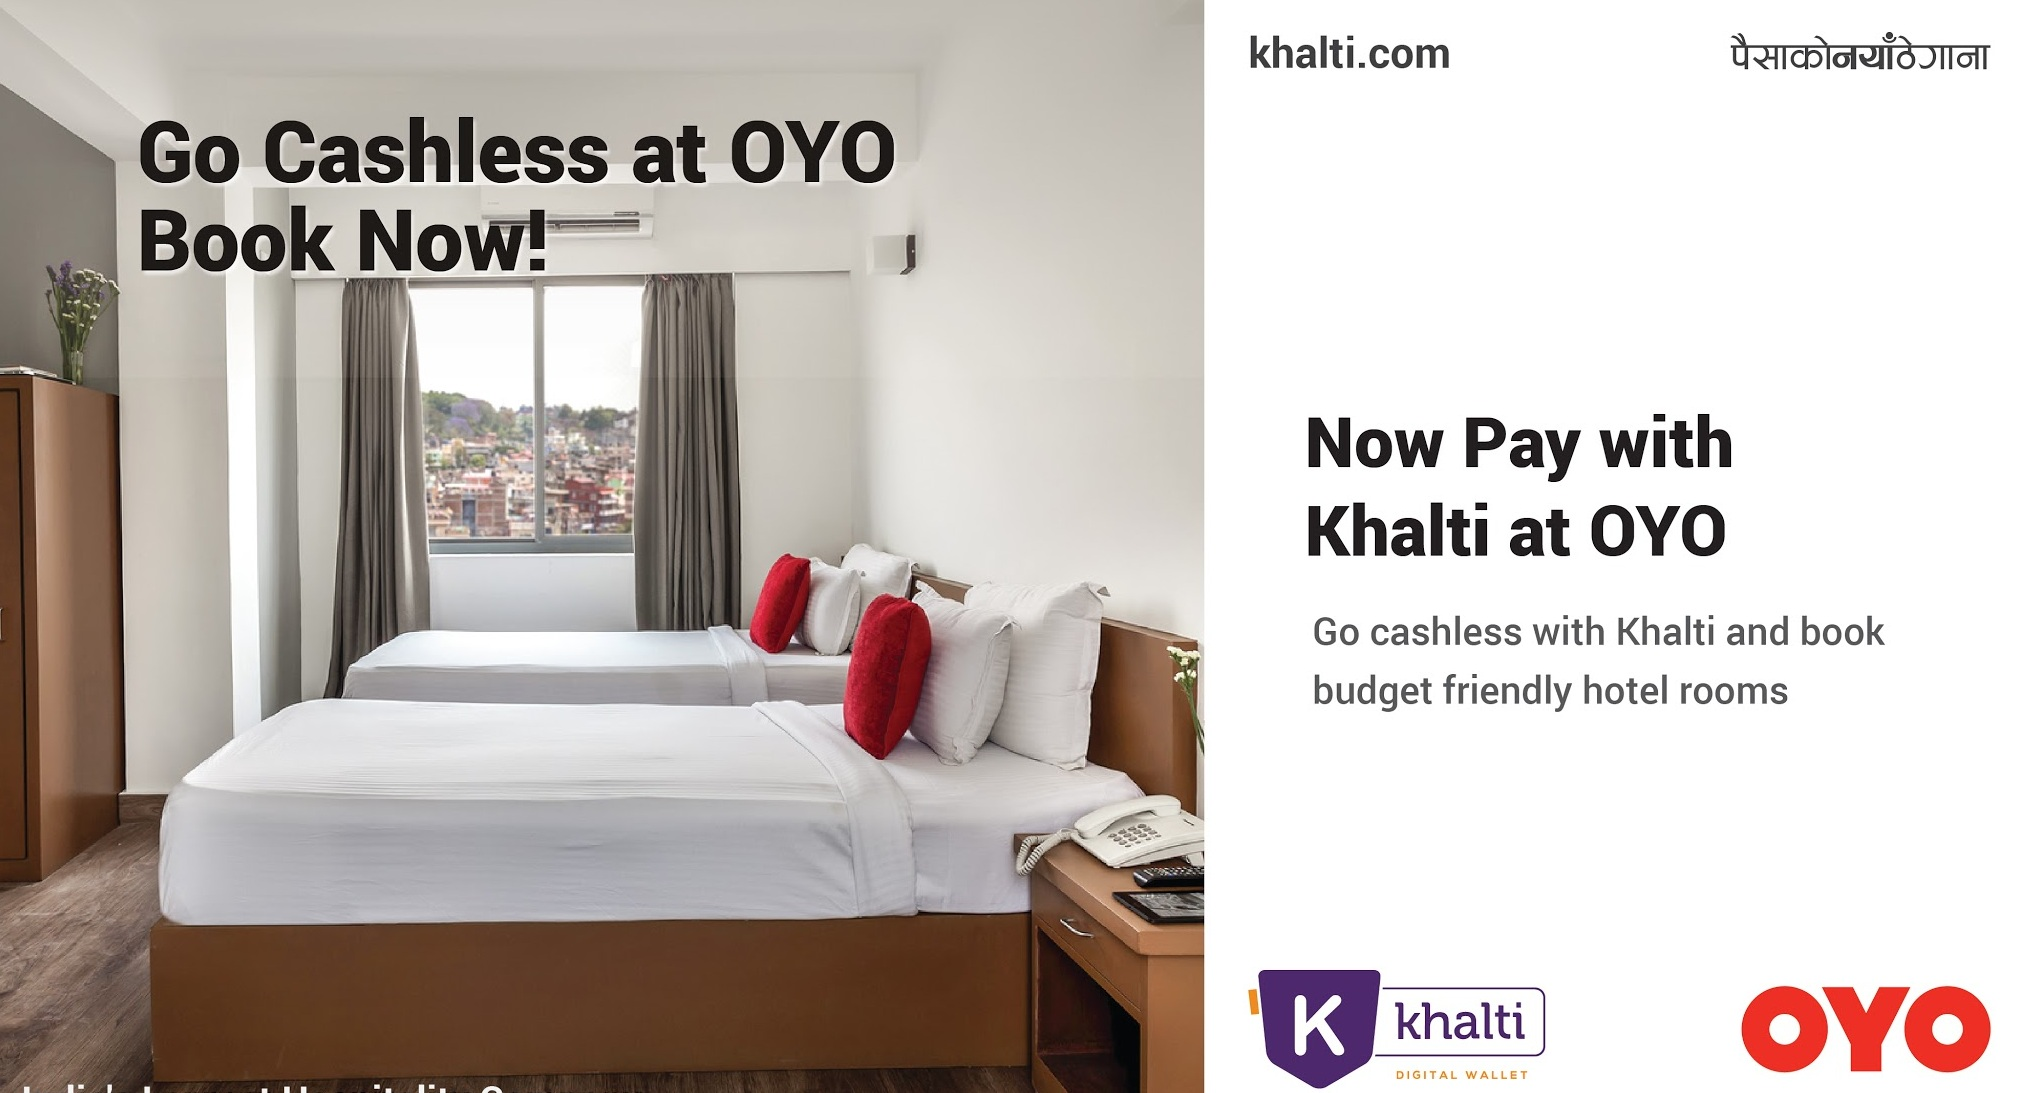 Khalti partners with OYO to make online hotel bookings in Nepal easier